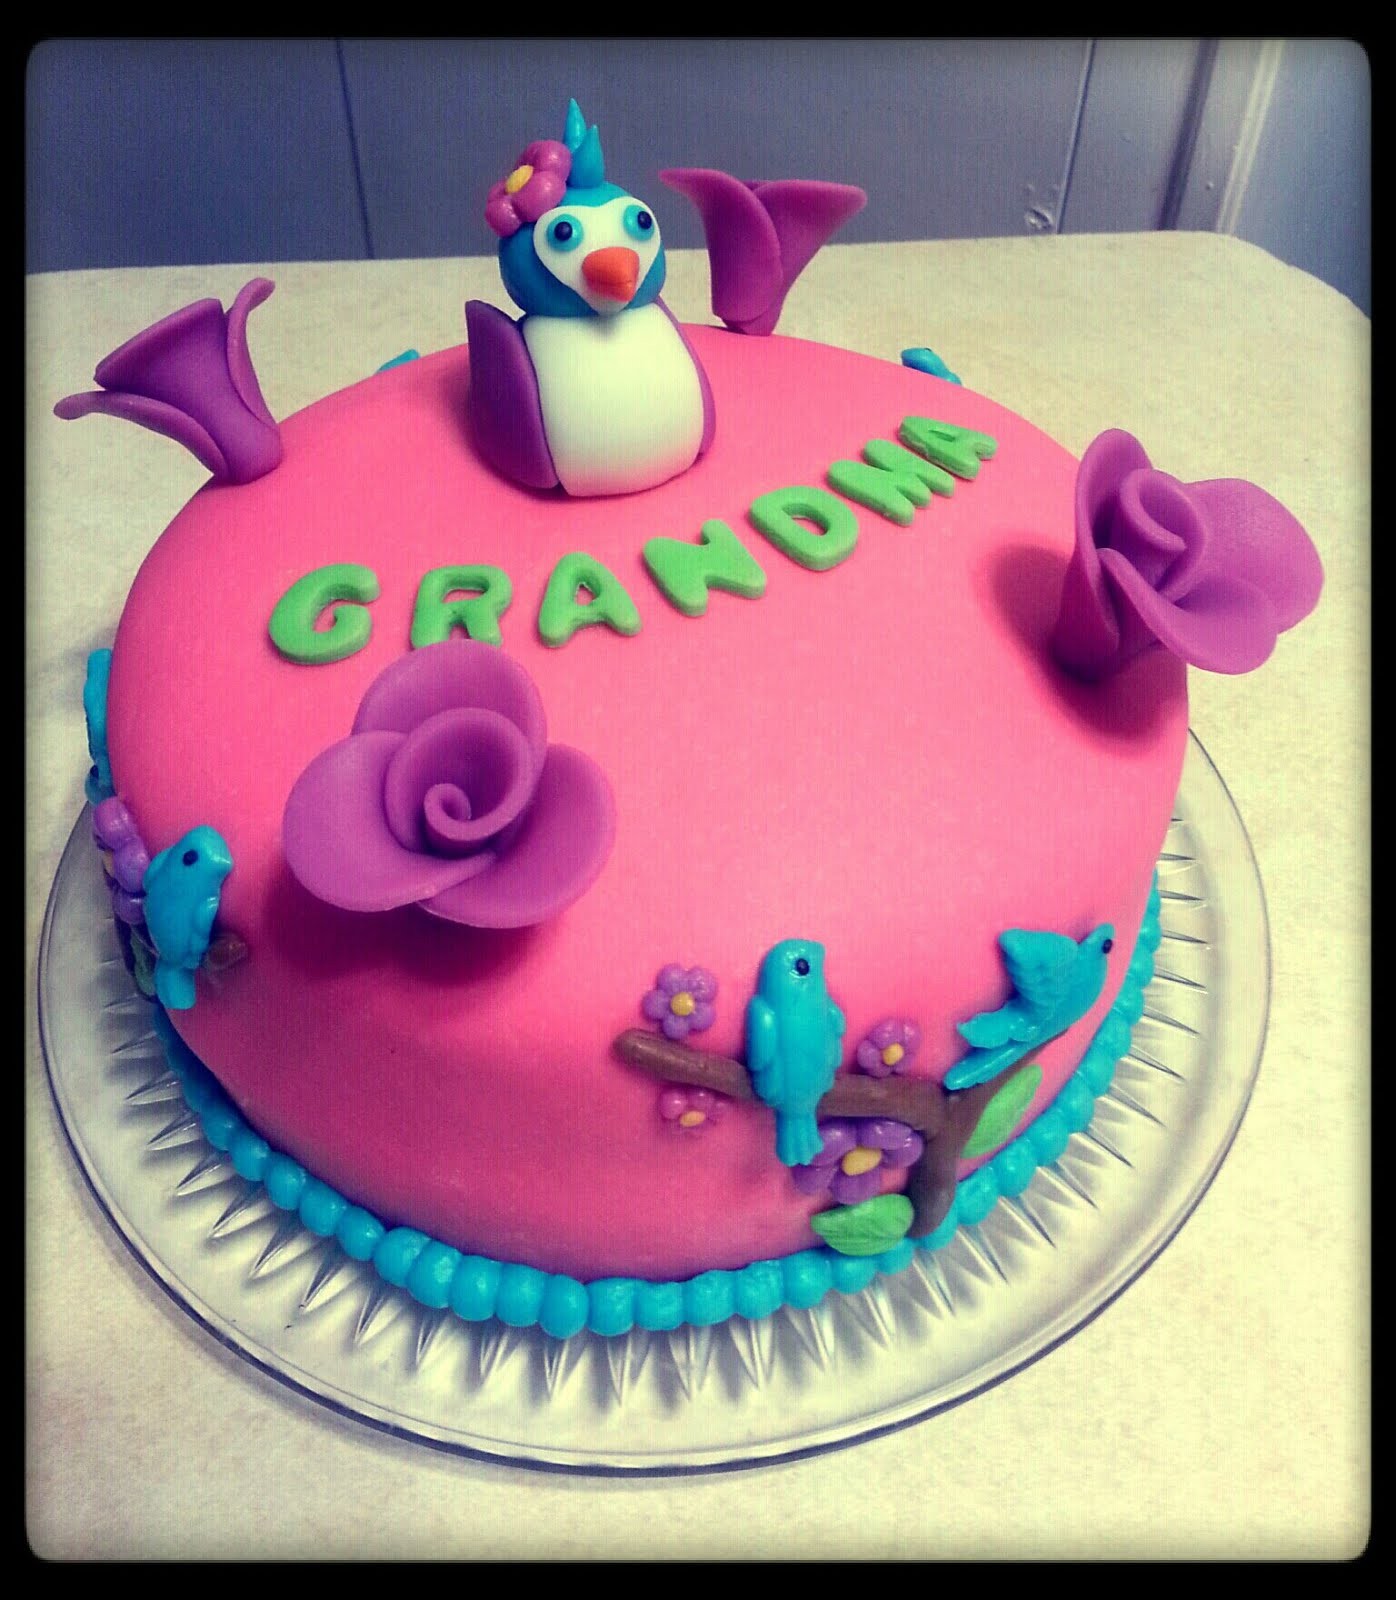 Birds And Flowers Birthday Cake For Grandma Bakery Creations By